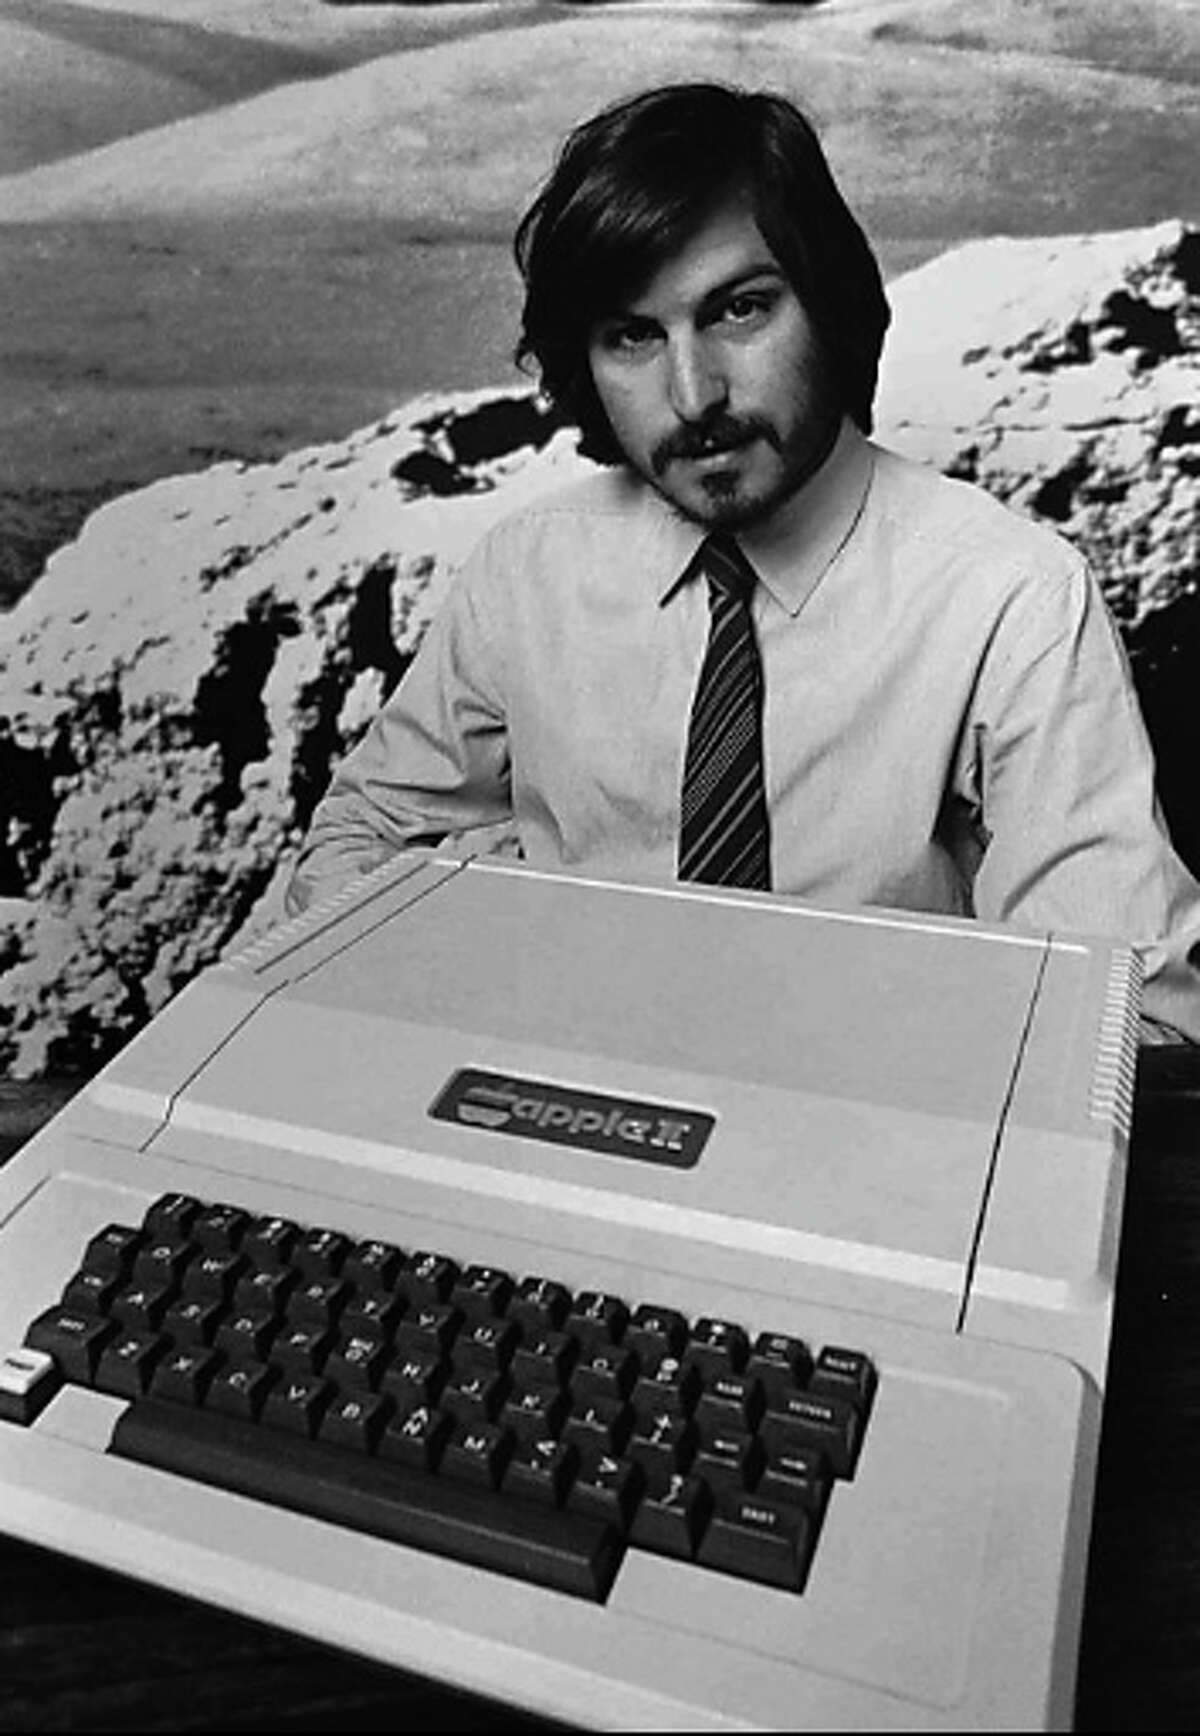 Founder Steve Jobs as he introduces the new Apple II in Cupertino in 1977.